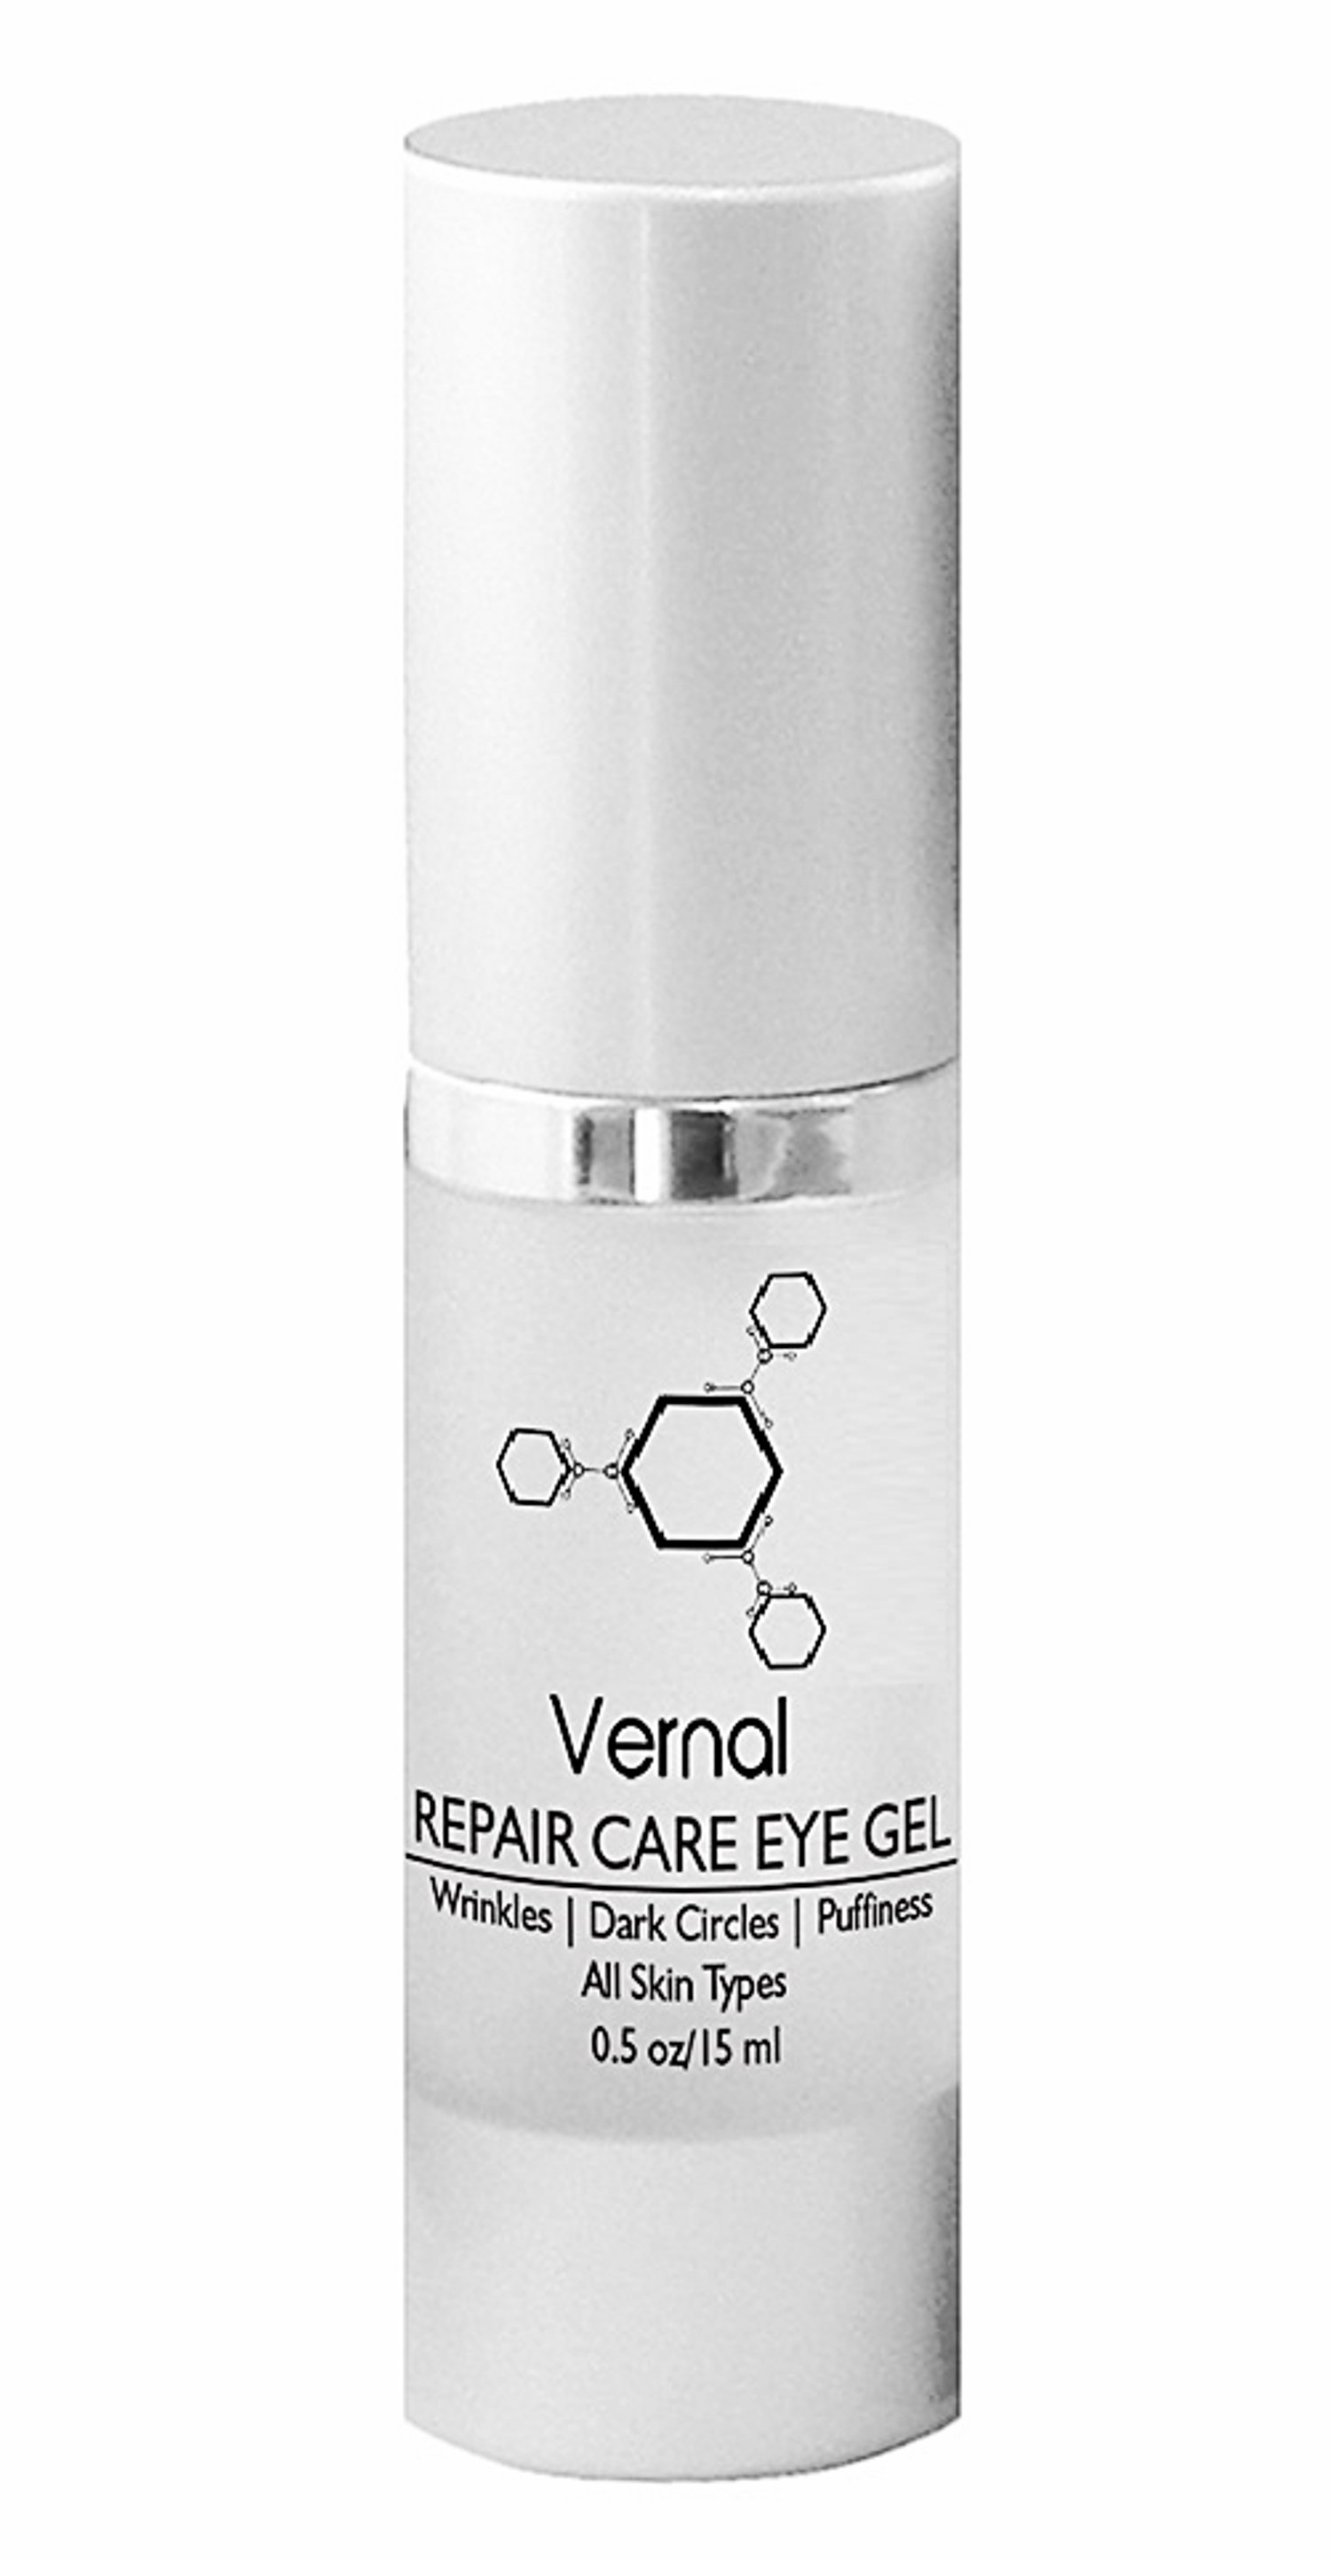 Vernal Repair Care Eye Gel - Under Eye Bags Treatment | For Dark Circles, Wrinkles, Dry Eyes, Puffy Eyes and More – 0.5 fl oz